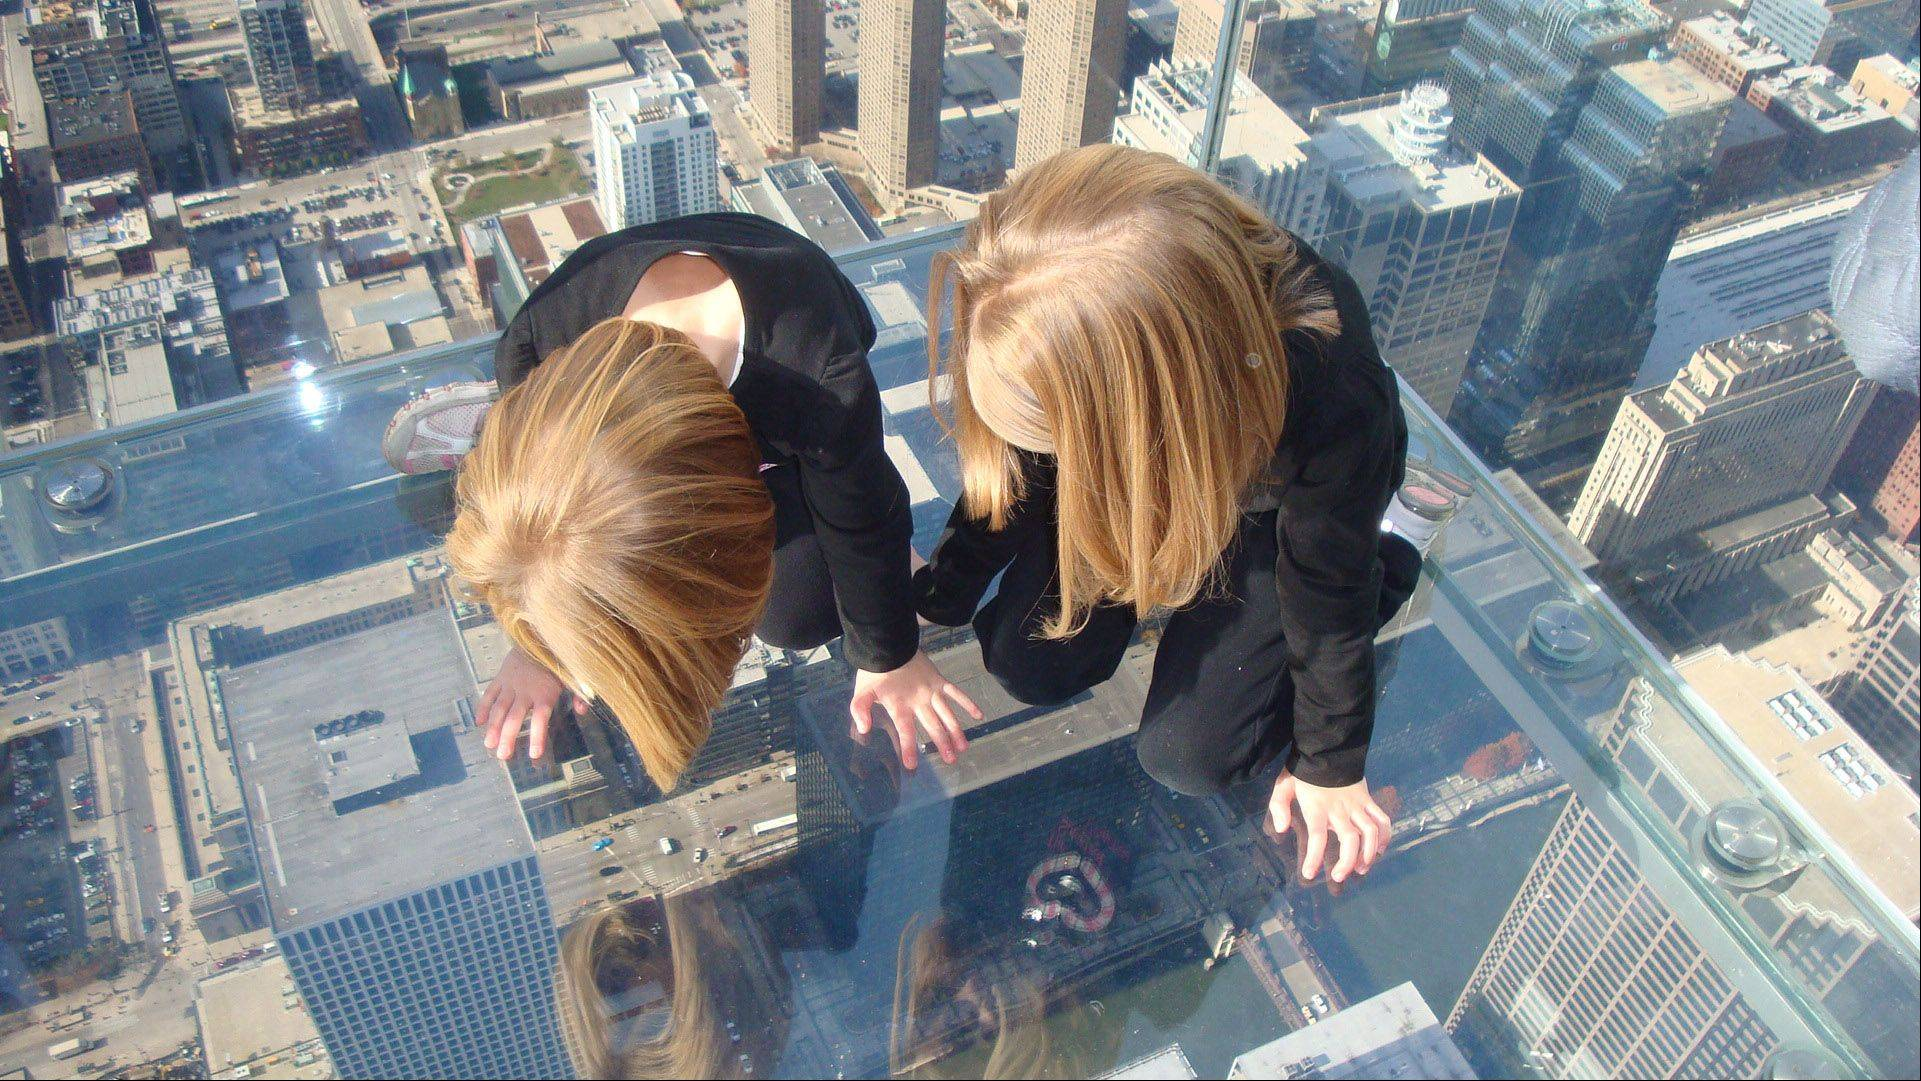 Two sisters, Gracie and Jillian Bouchard, had no problem being �on top of the world� atop the Willis Tower Ledge in downtown Chicago this past Veterans Day.